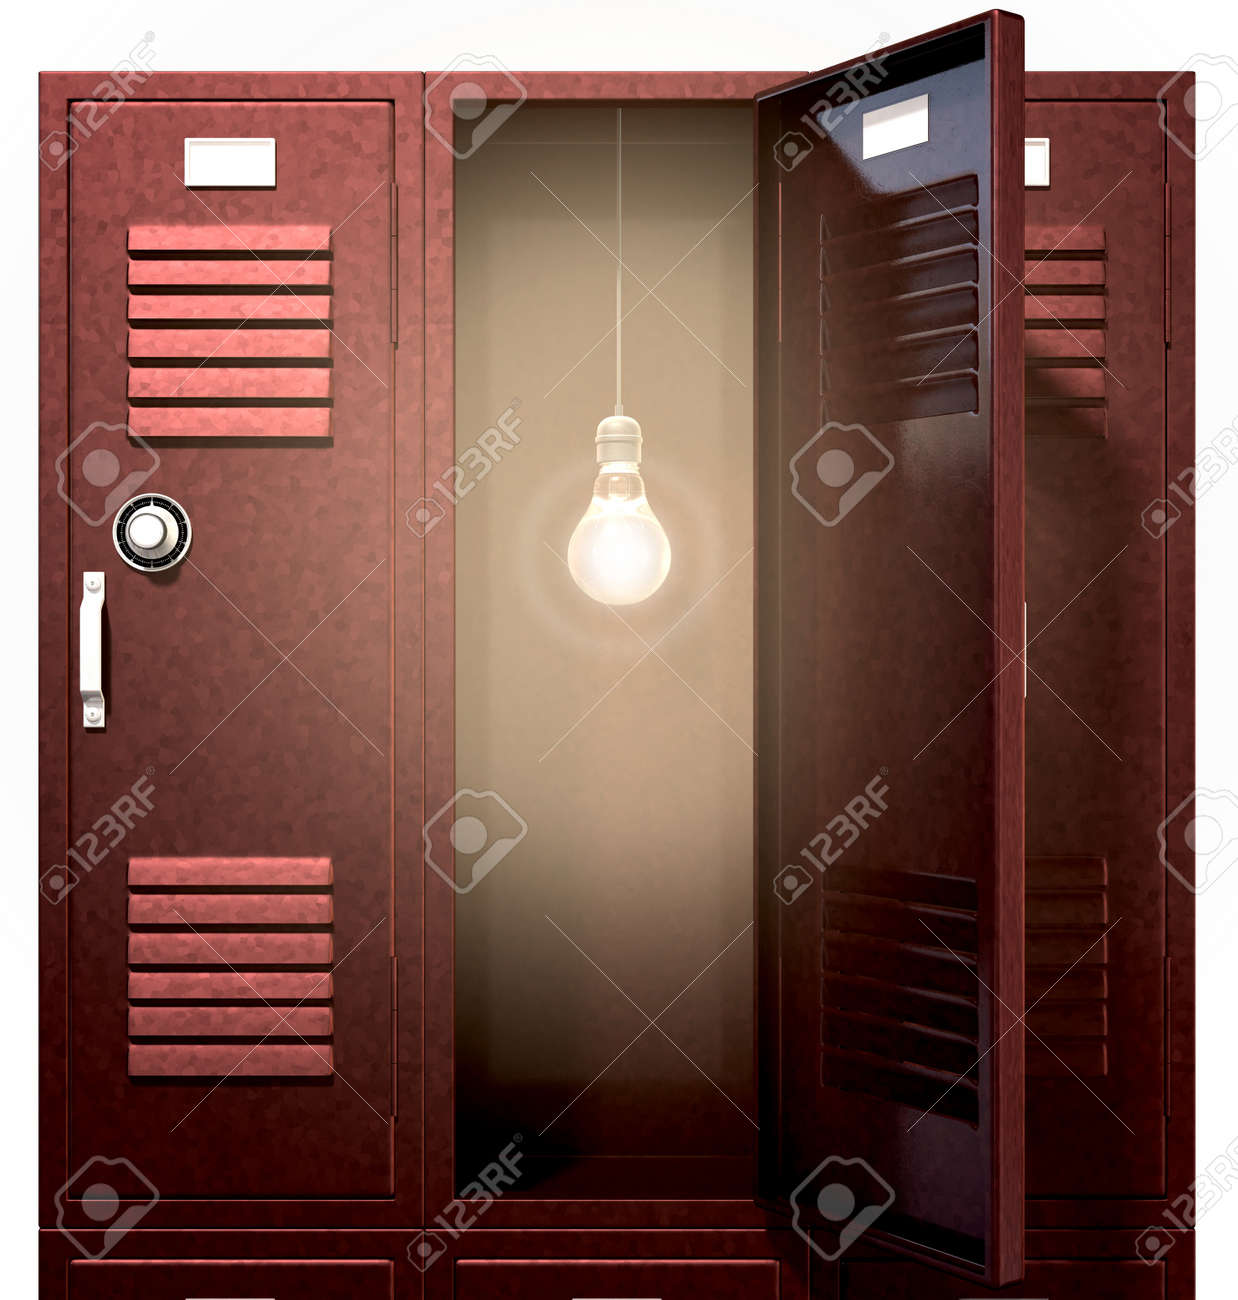 A Stack Of Red Metal School Lockers With One An Open Door Illuminated